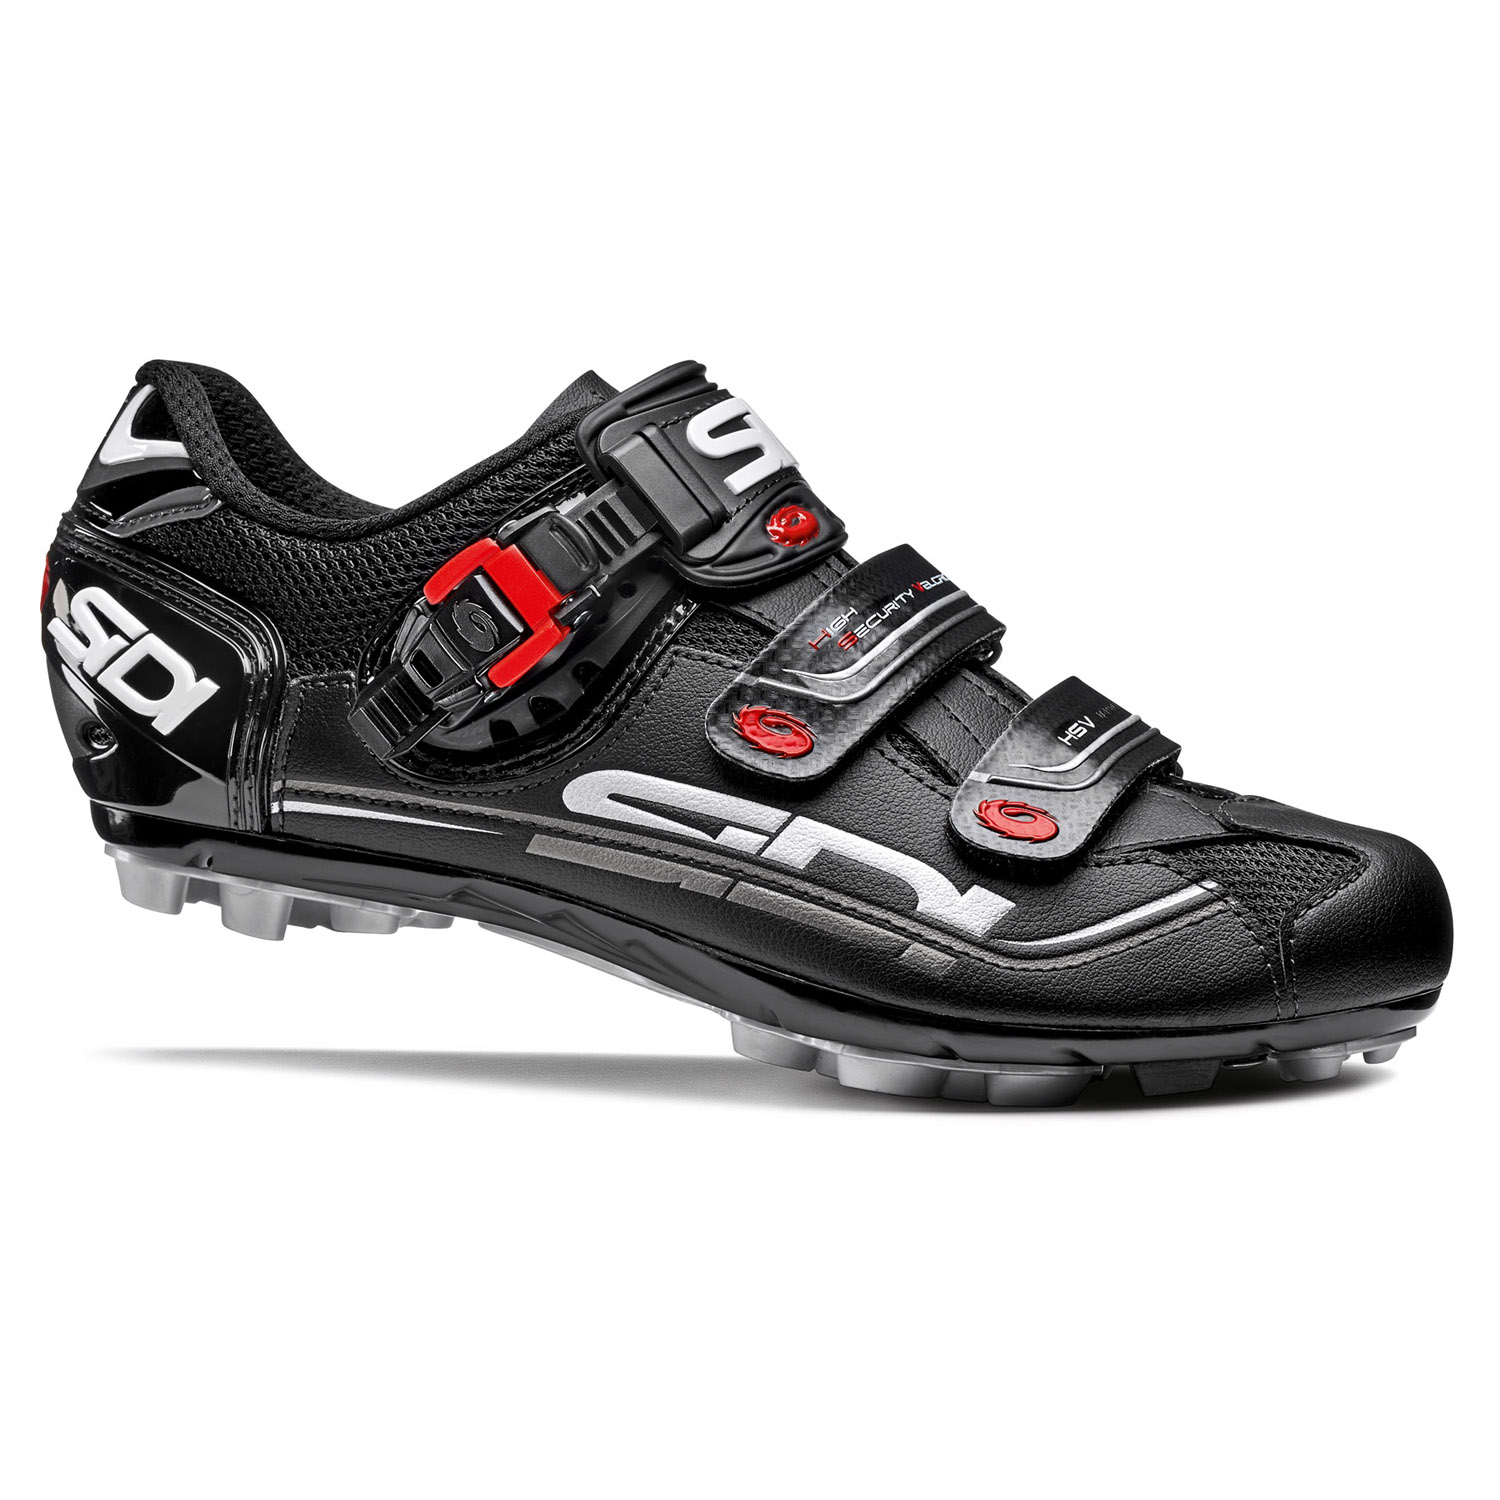 sidi eagle 7 mtb schuhe herren schwarz gr e 44 online. Black Bedroom Furniture Sets. Home Design Ideas